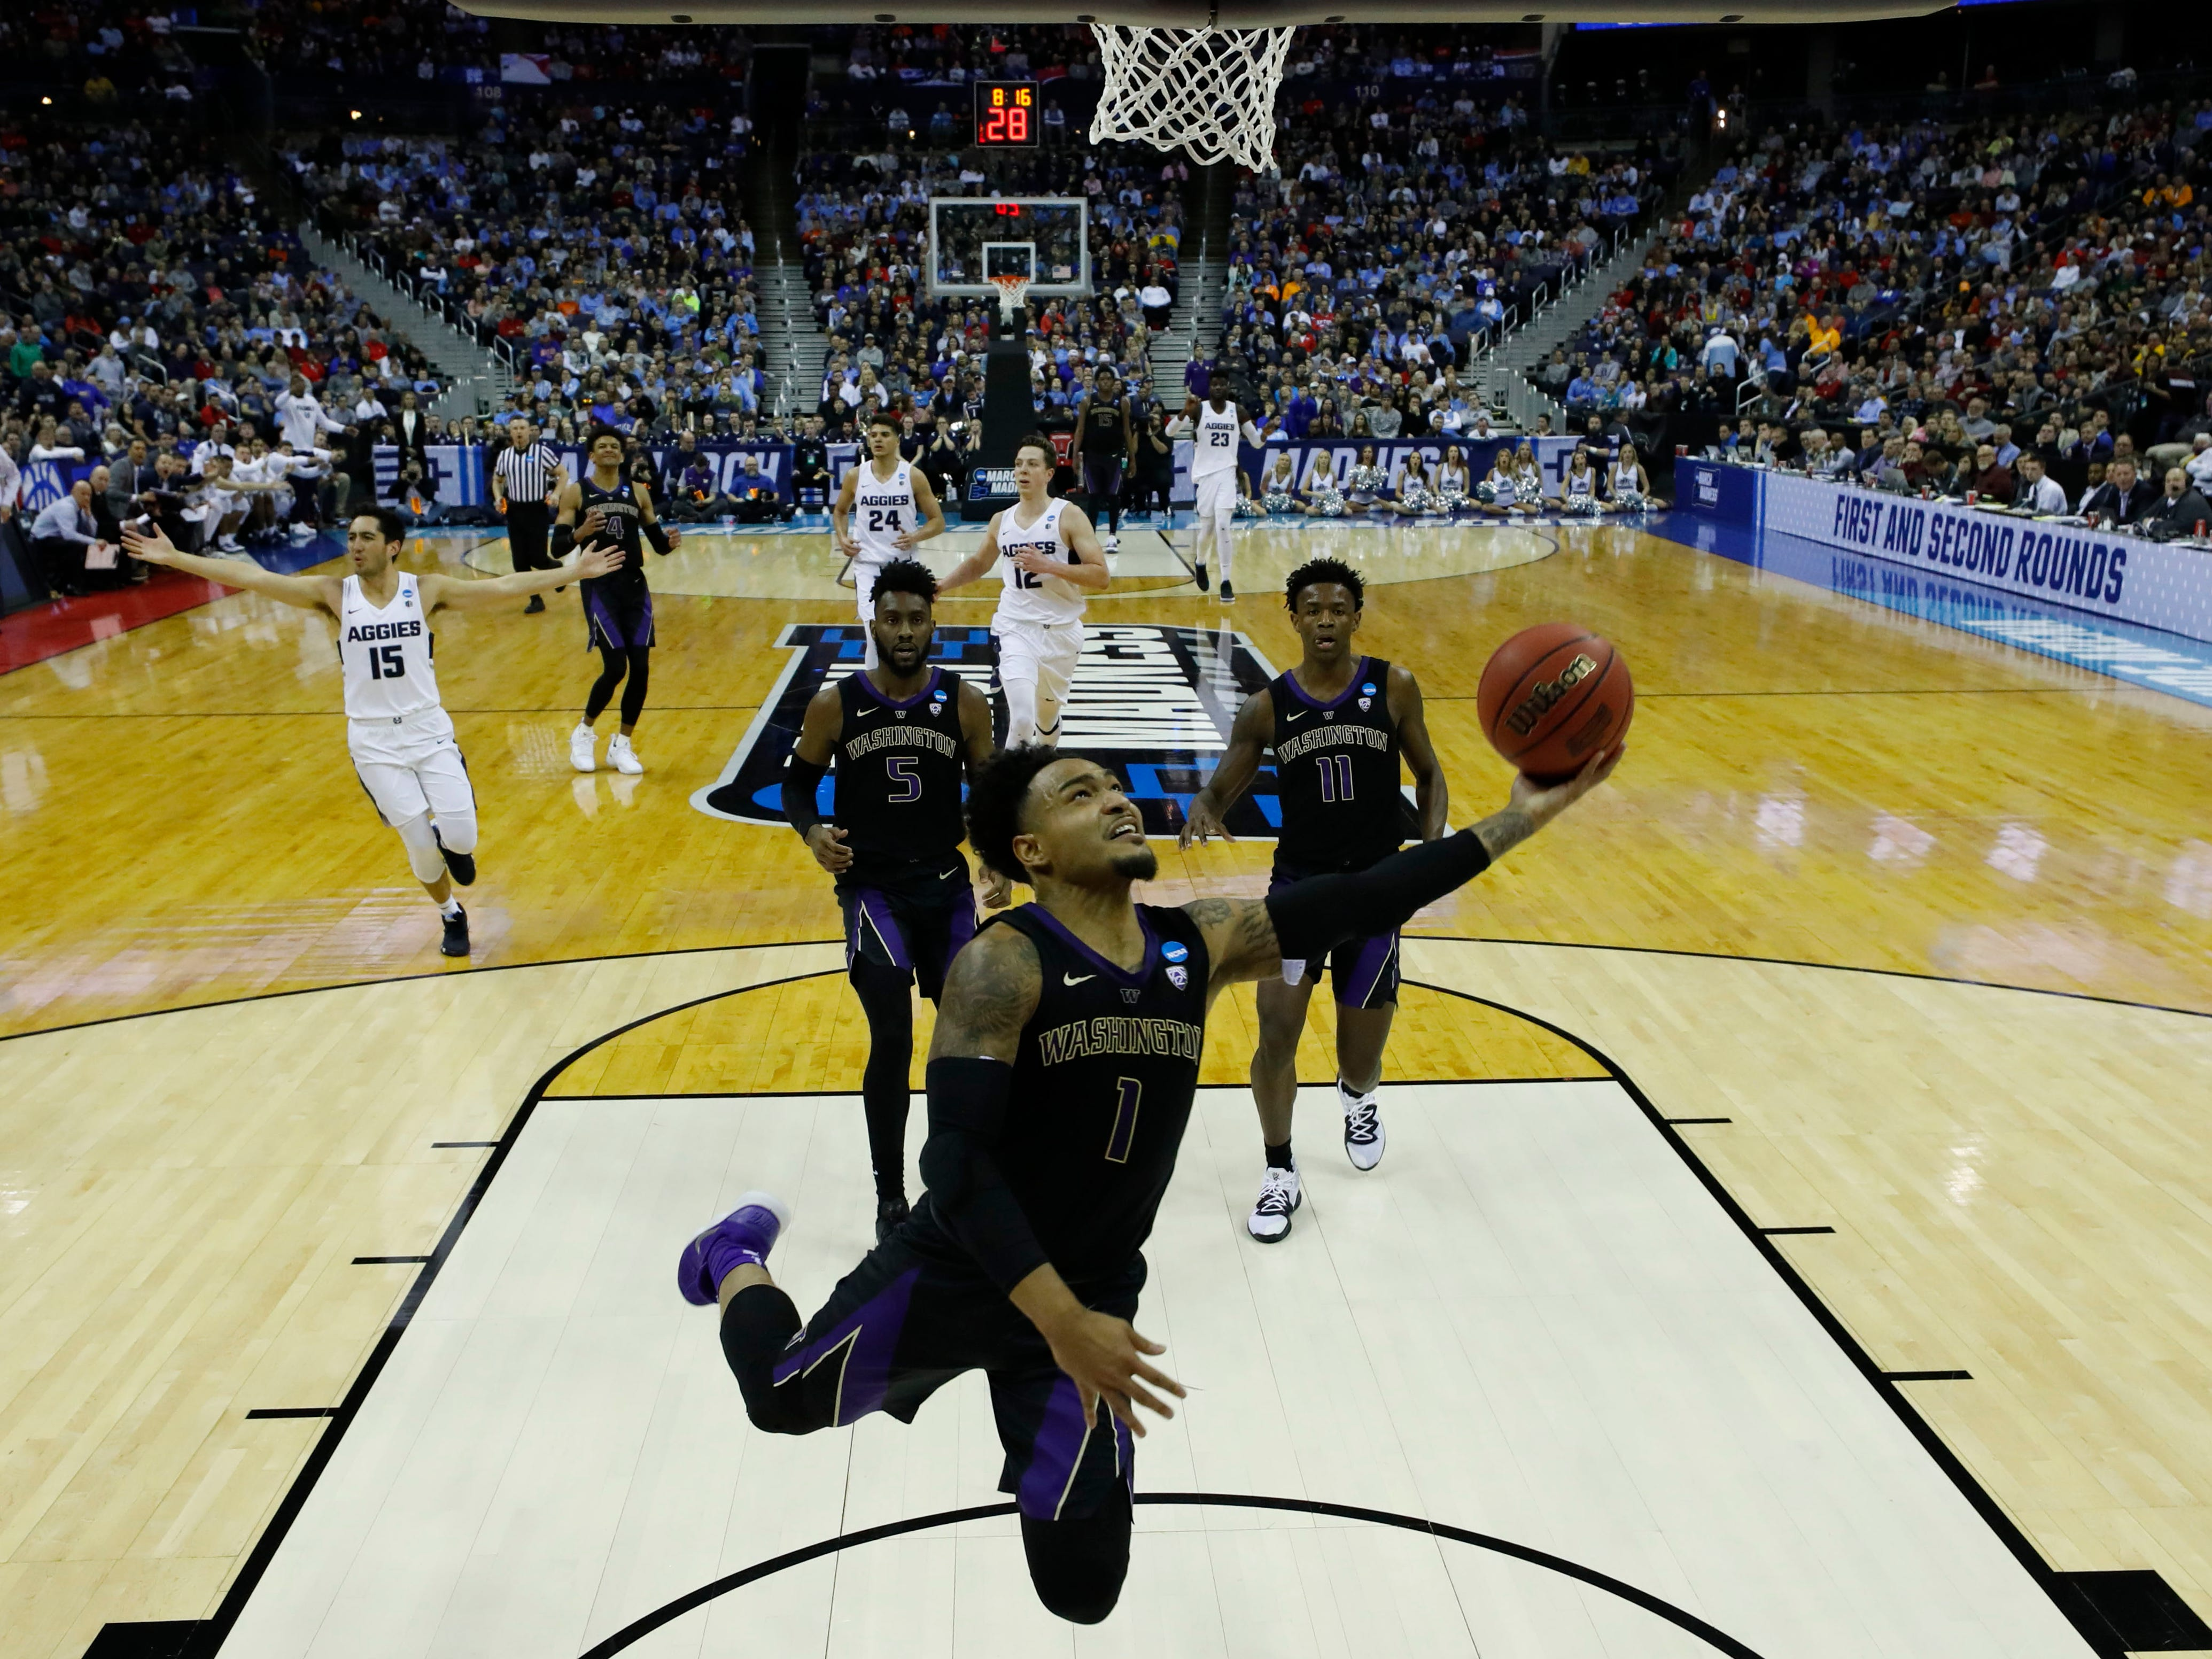 First round: Washington Huskies guard David Crisp shoots the ball in the second half against the Utah State Aggies.